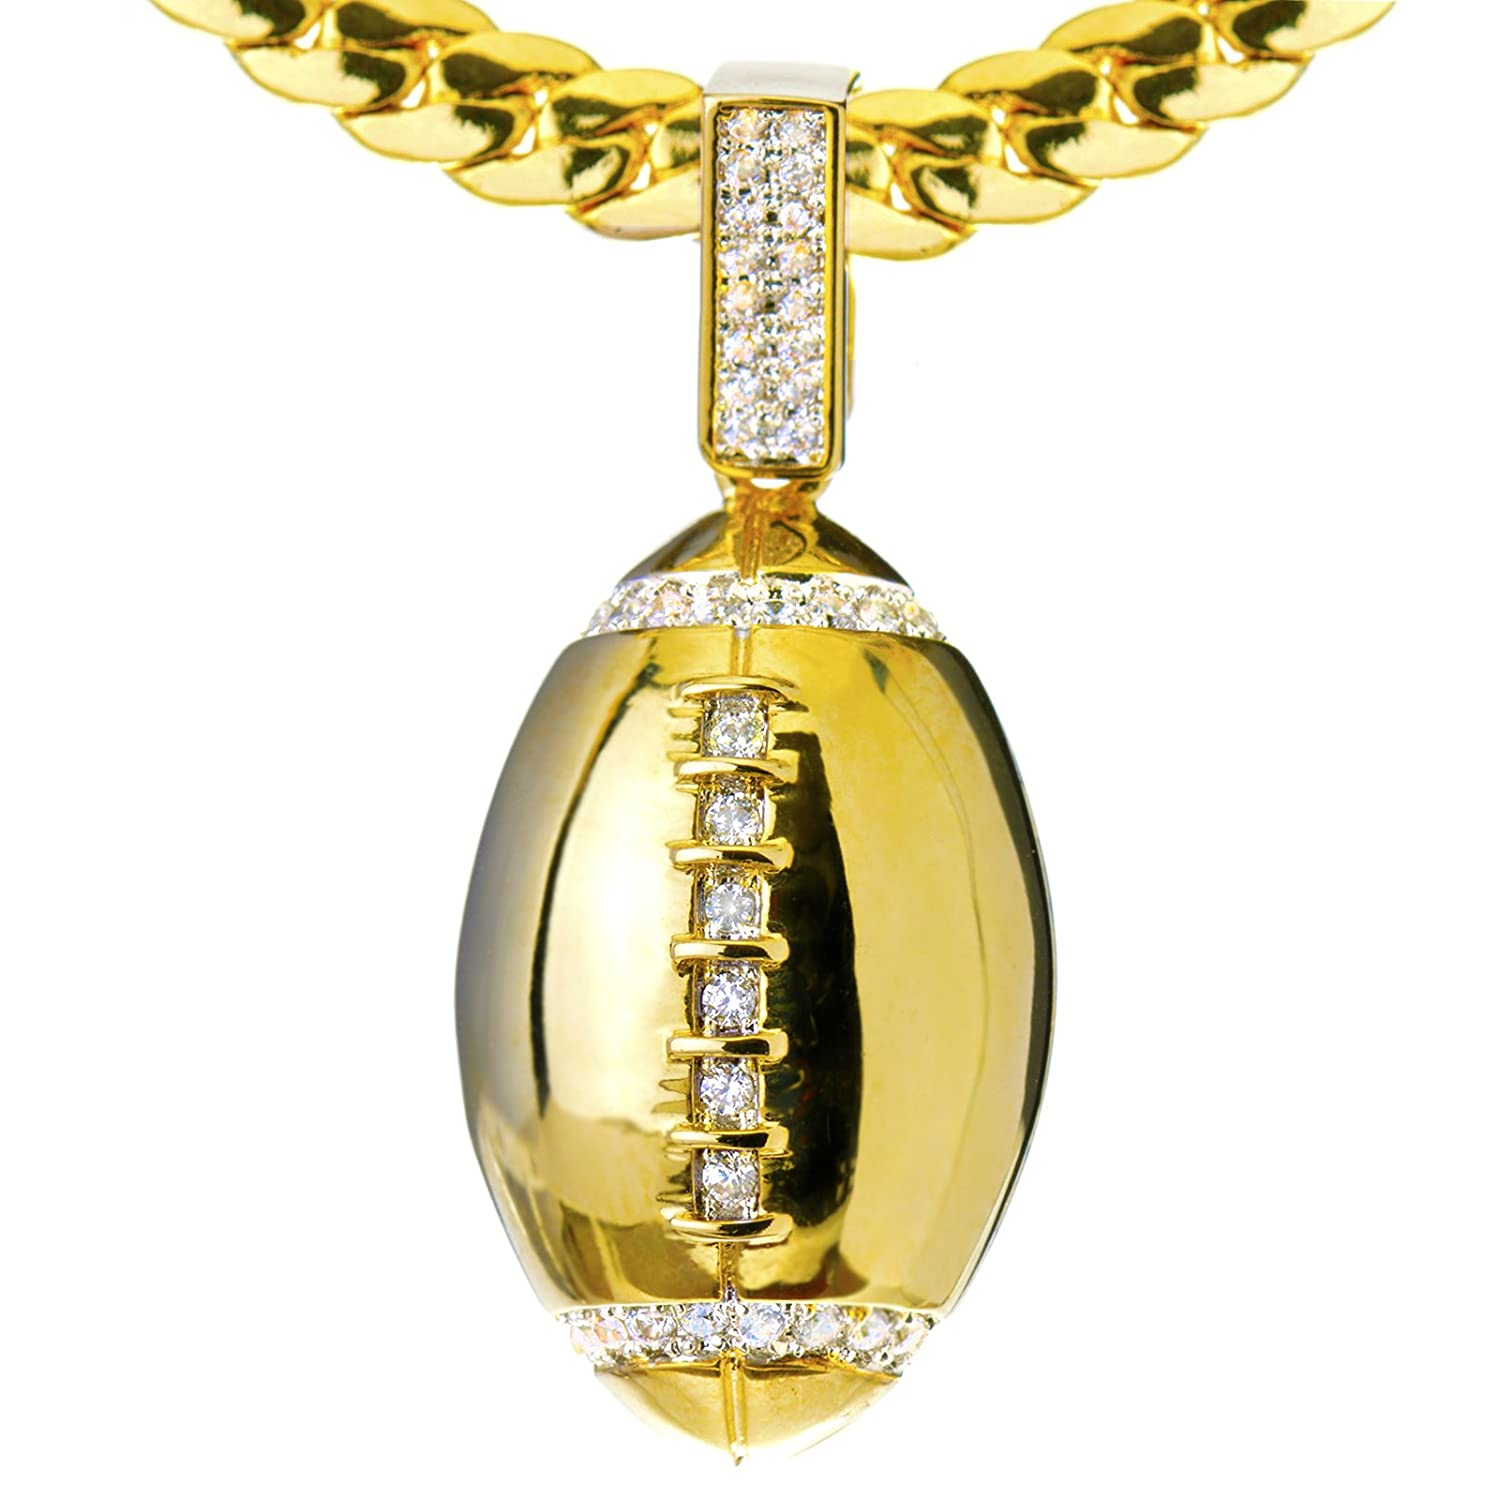 ball soccer necklace gold stainless s com football inch pendant amazon jajafook steel dp chain men with plated